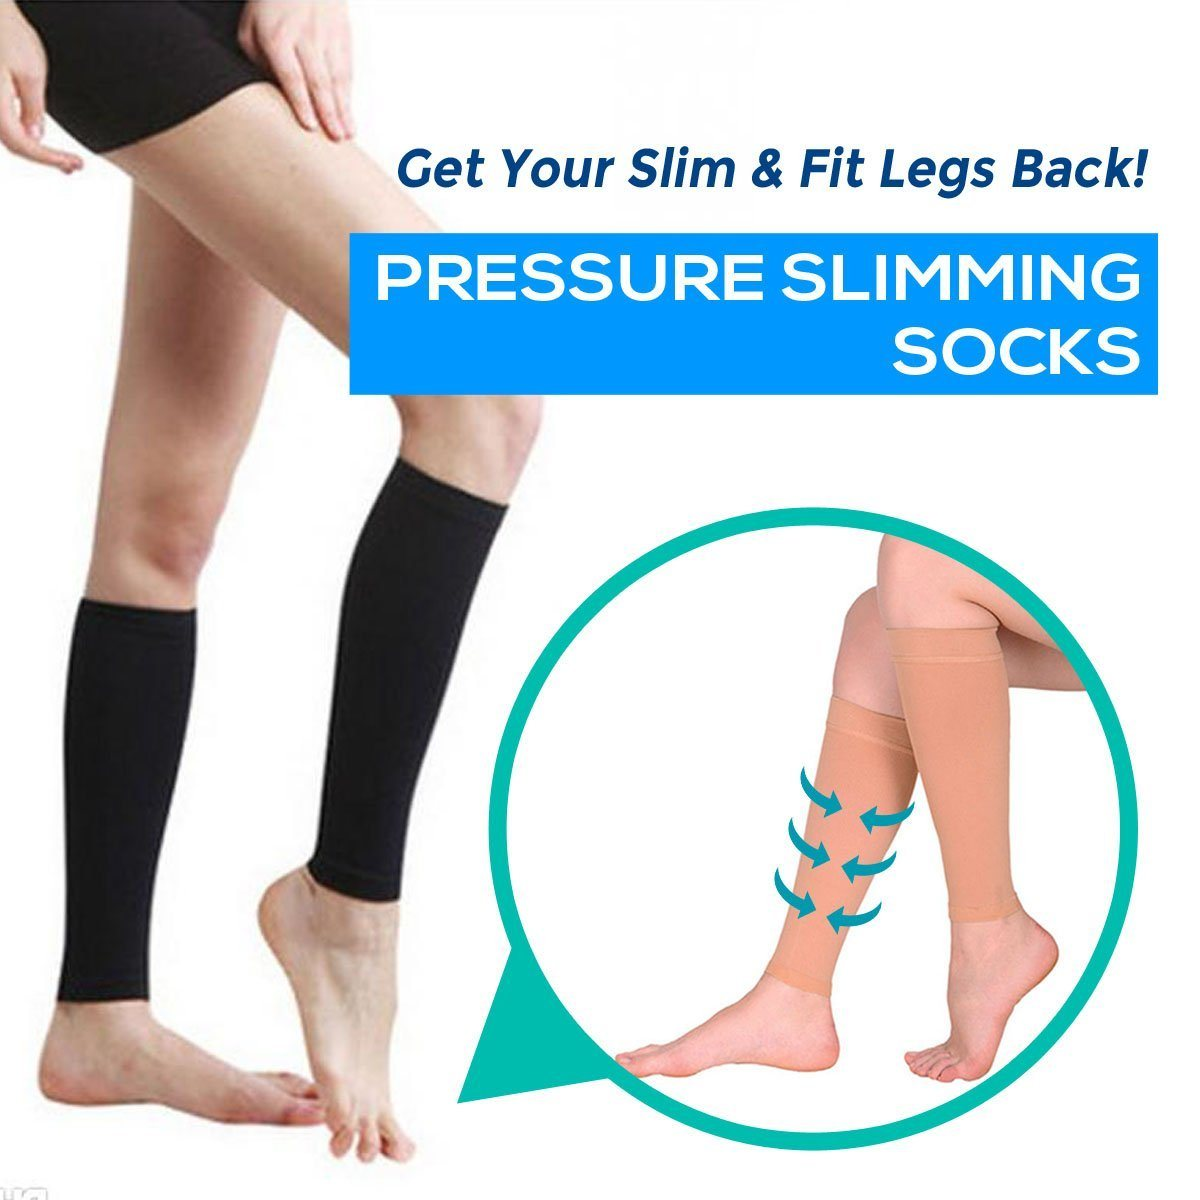 e85cb1fecb Load image into Gallery viewer, Women Slimming Leg & Thigh Compression  ...